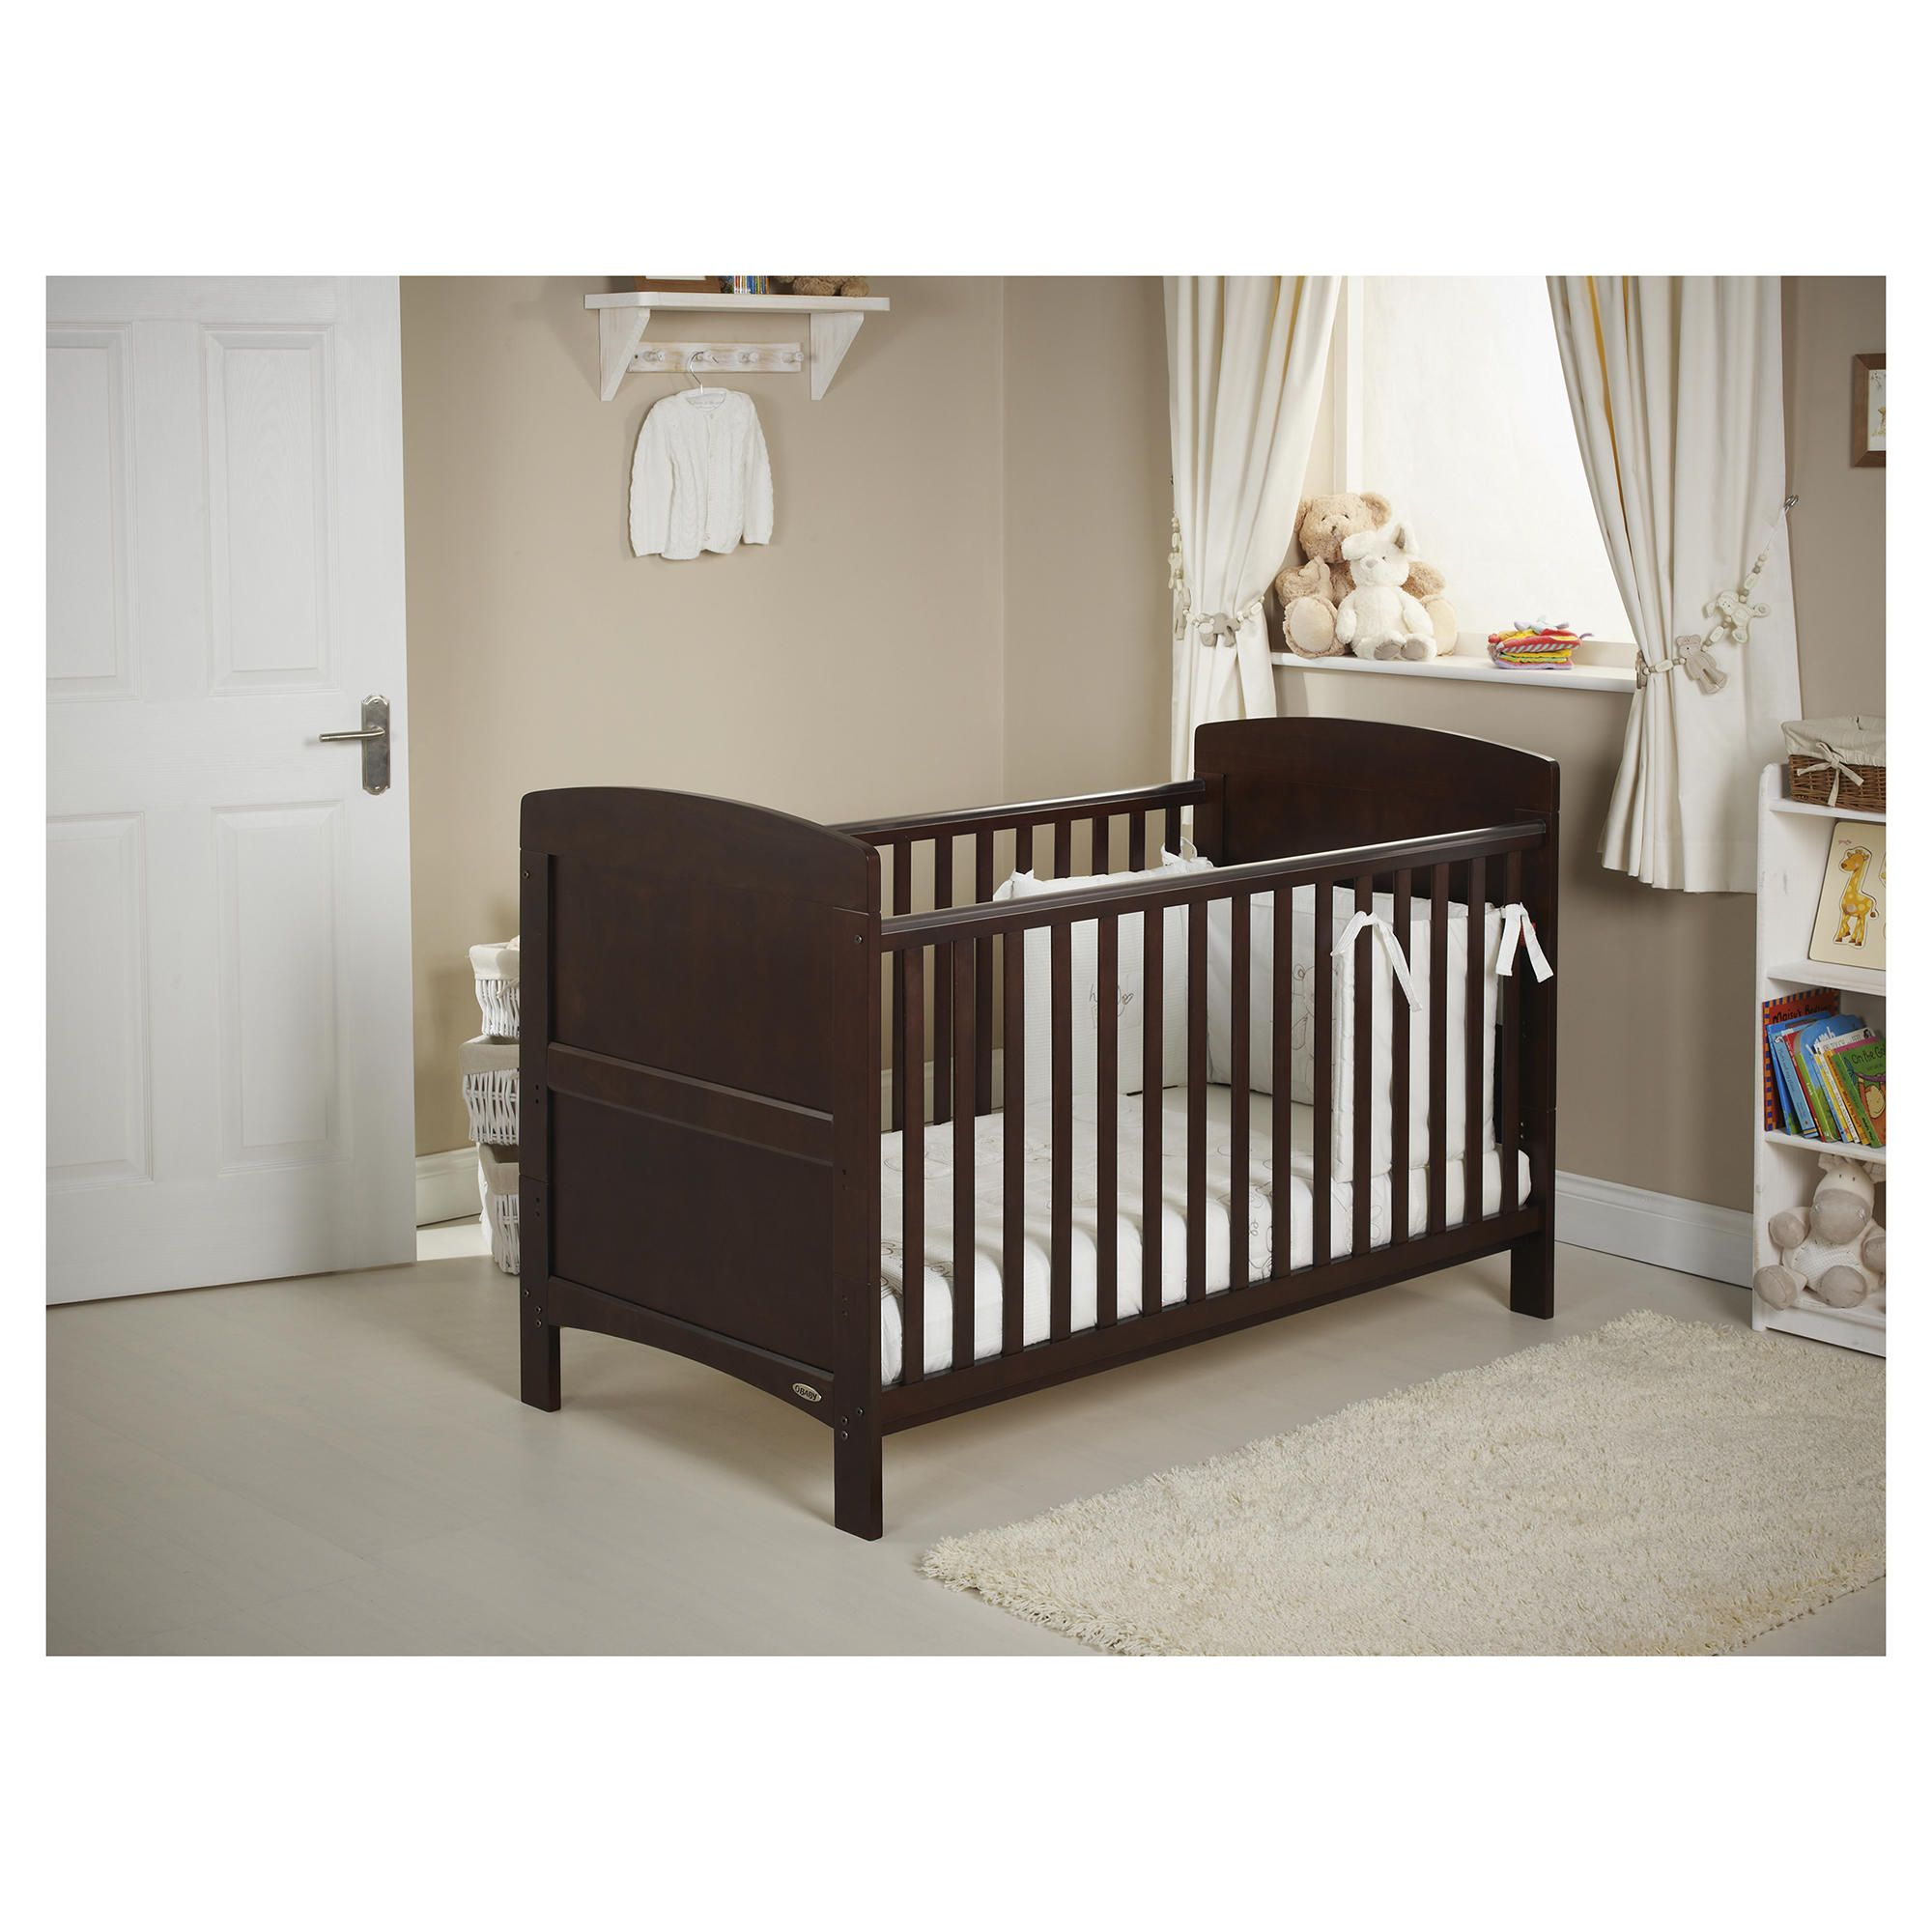 Cot Bed Set Country Pine Cot Bed With White Bedding Includes Mattress Bed Mattress Sale